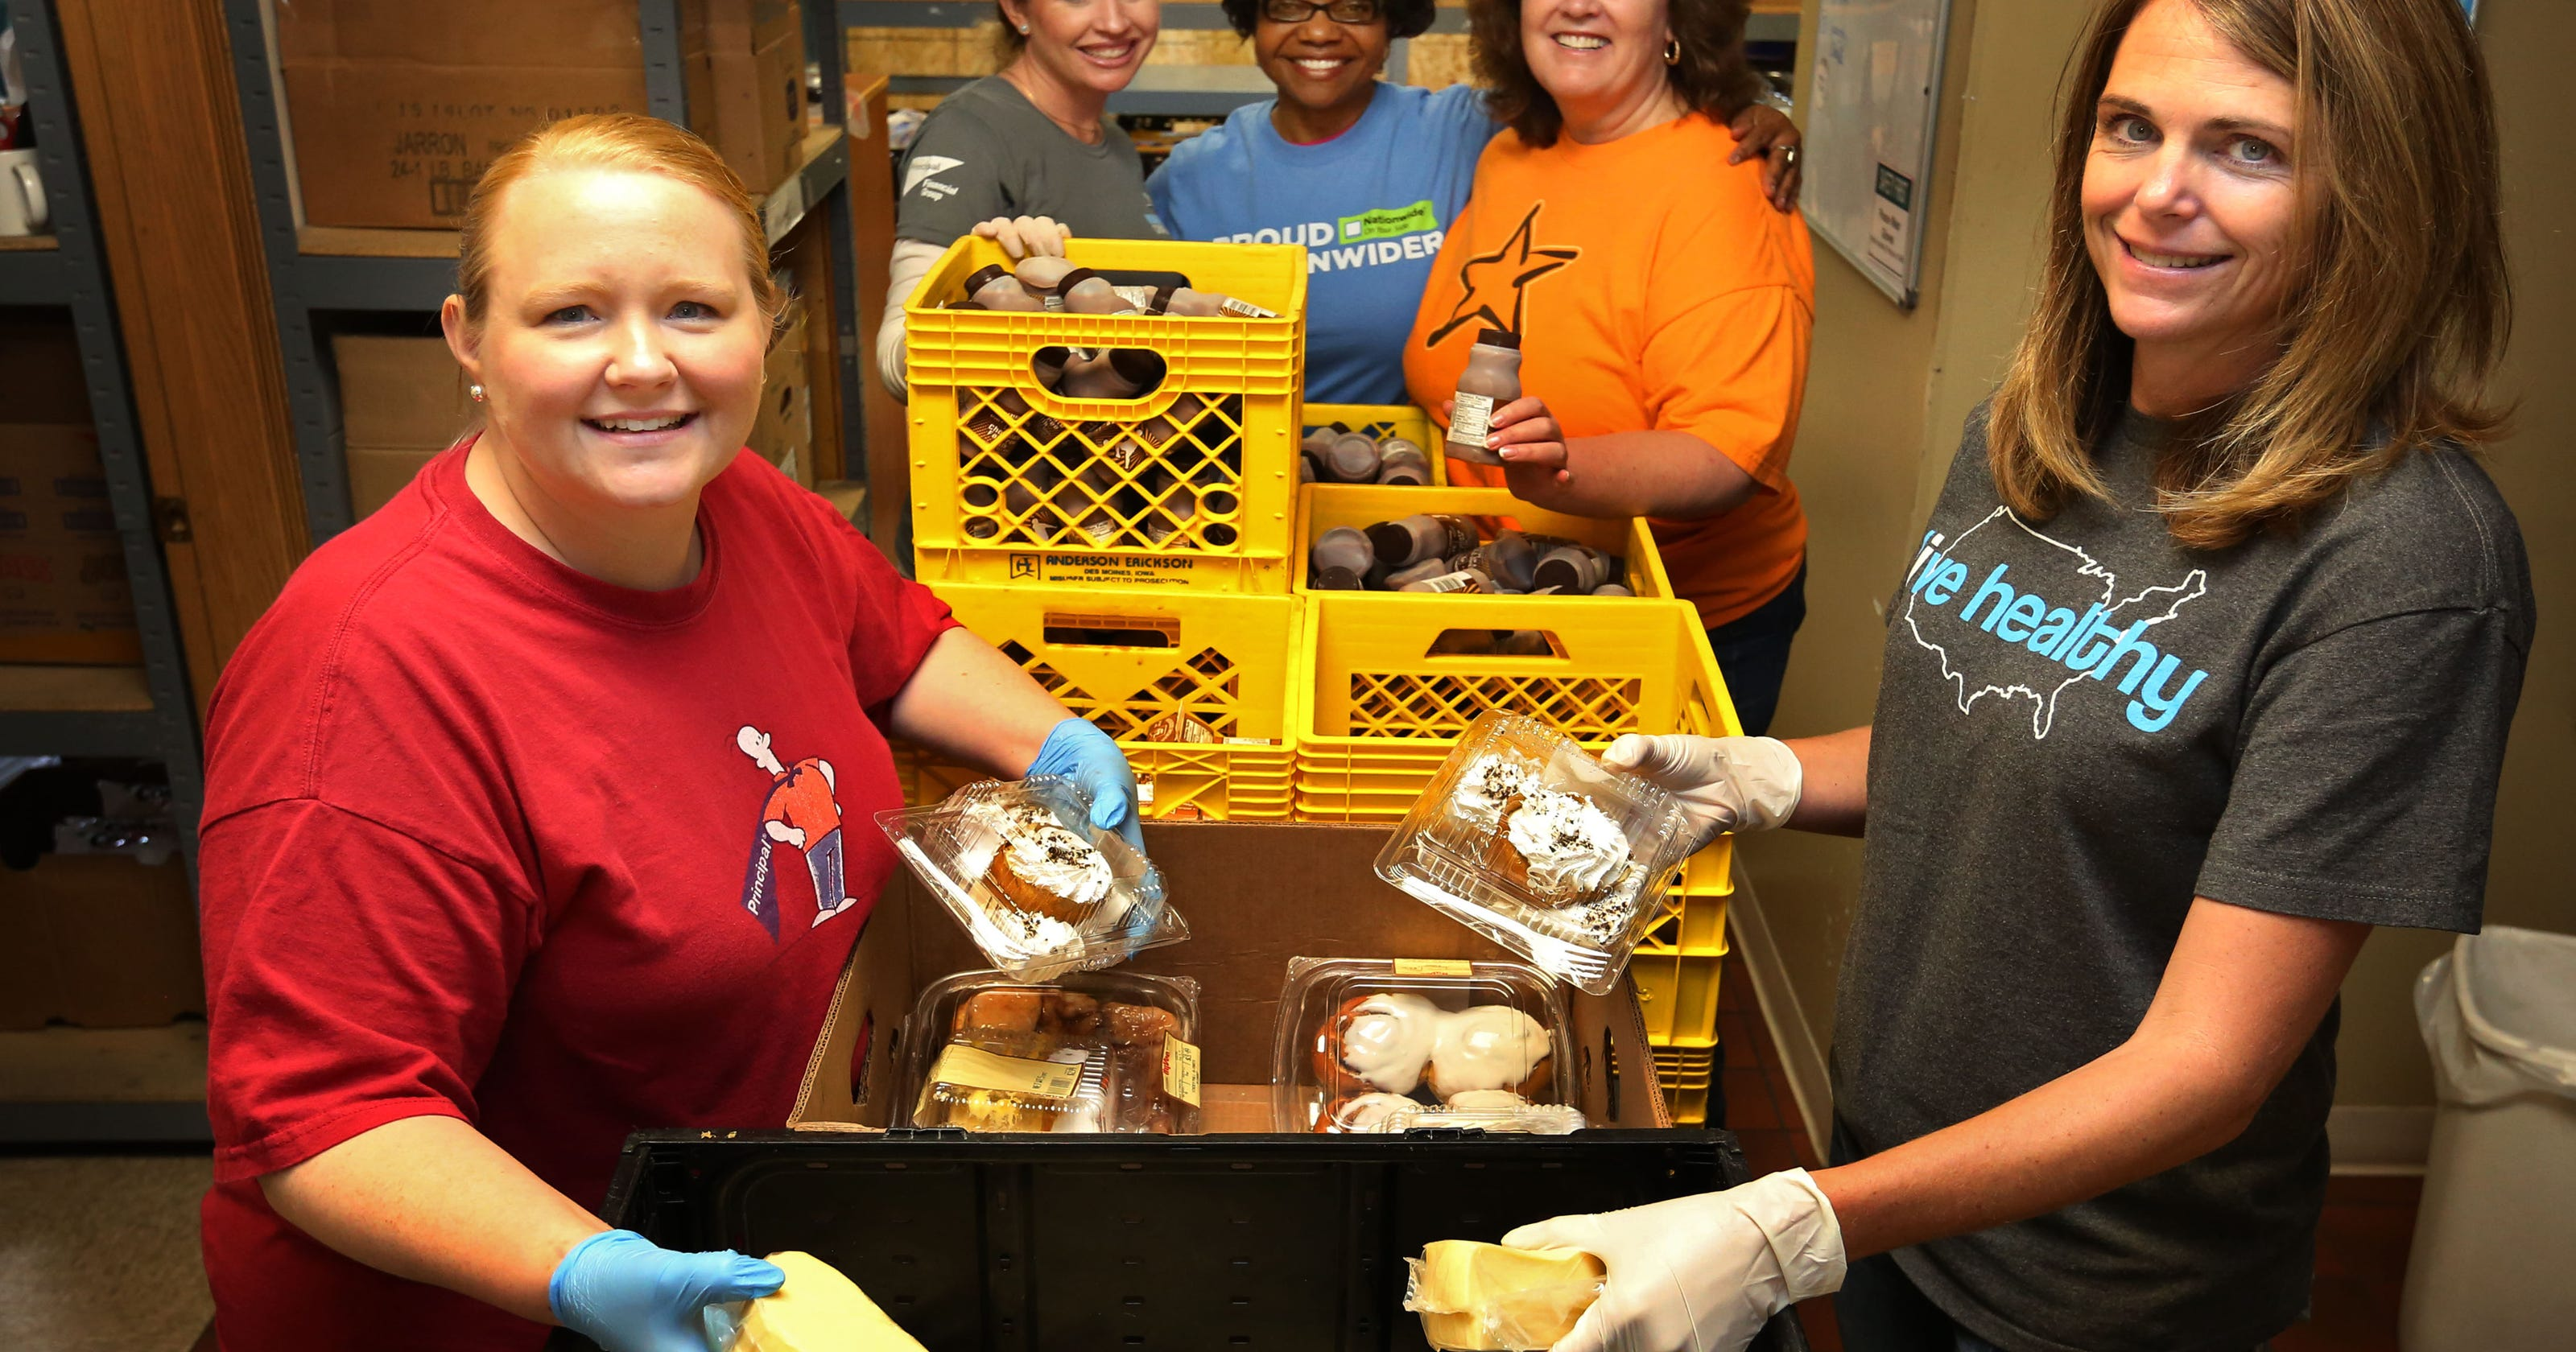 Find a holiday volunteer opportunity in Central Iowa